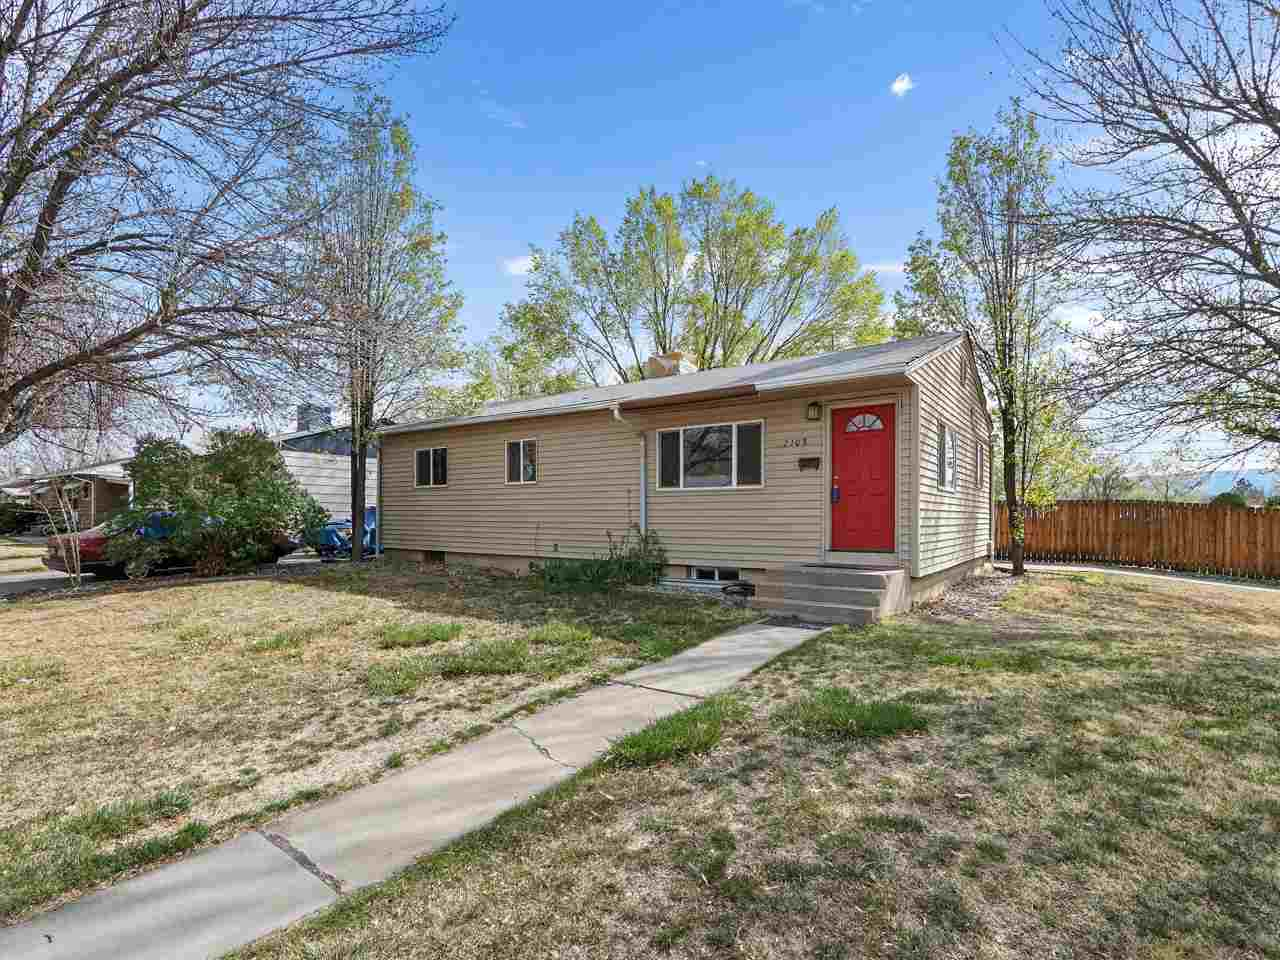 2108 N 22nd Street Property Photo - Grand Junction, CO real estate listing